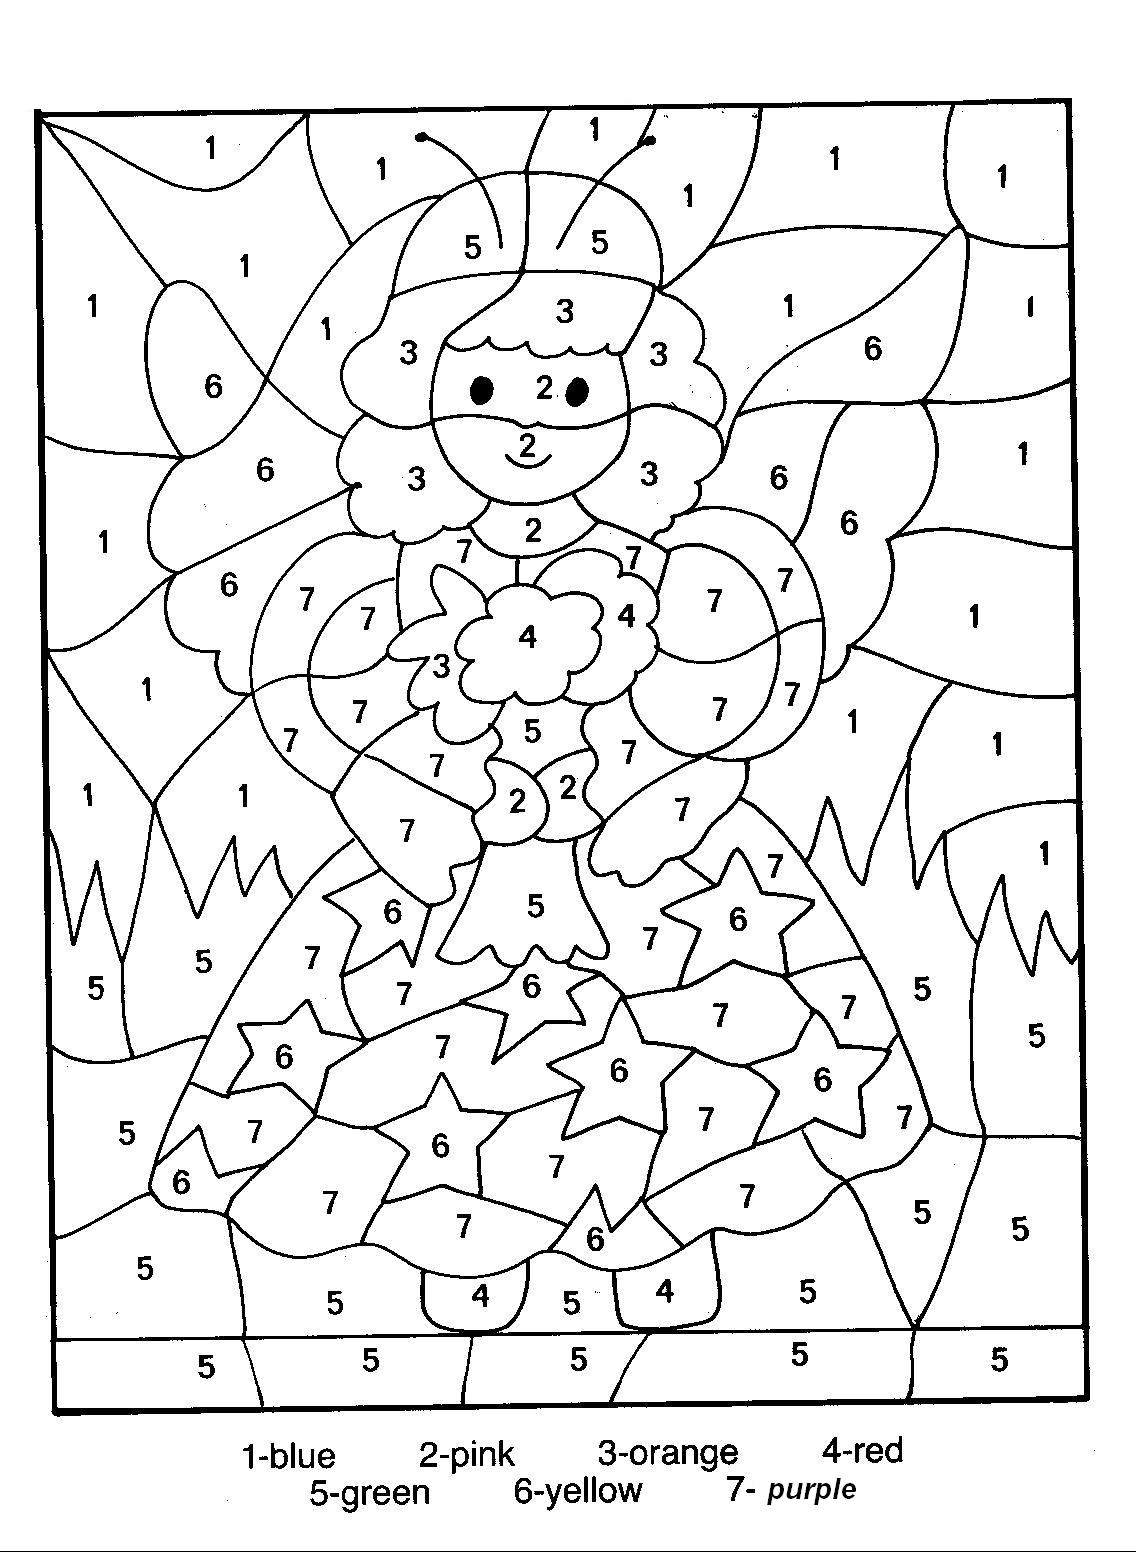 coloring worksheets color by number coloring pages to download and print for free coloring worksheets